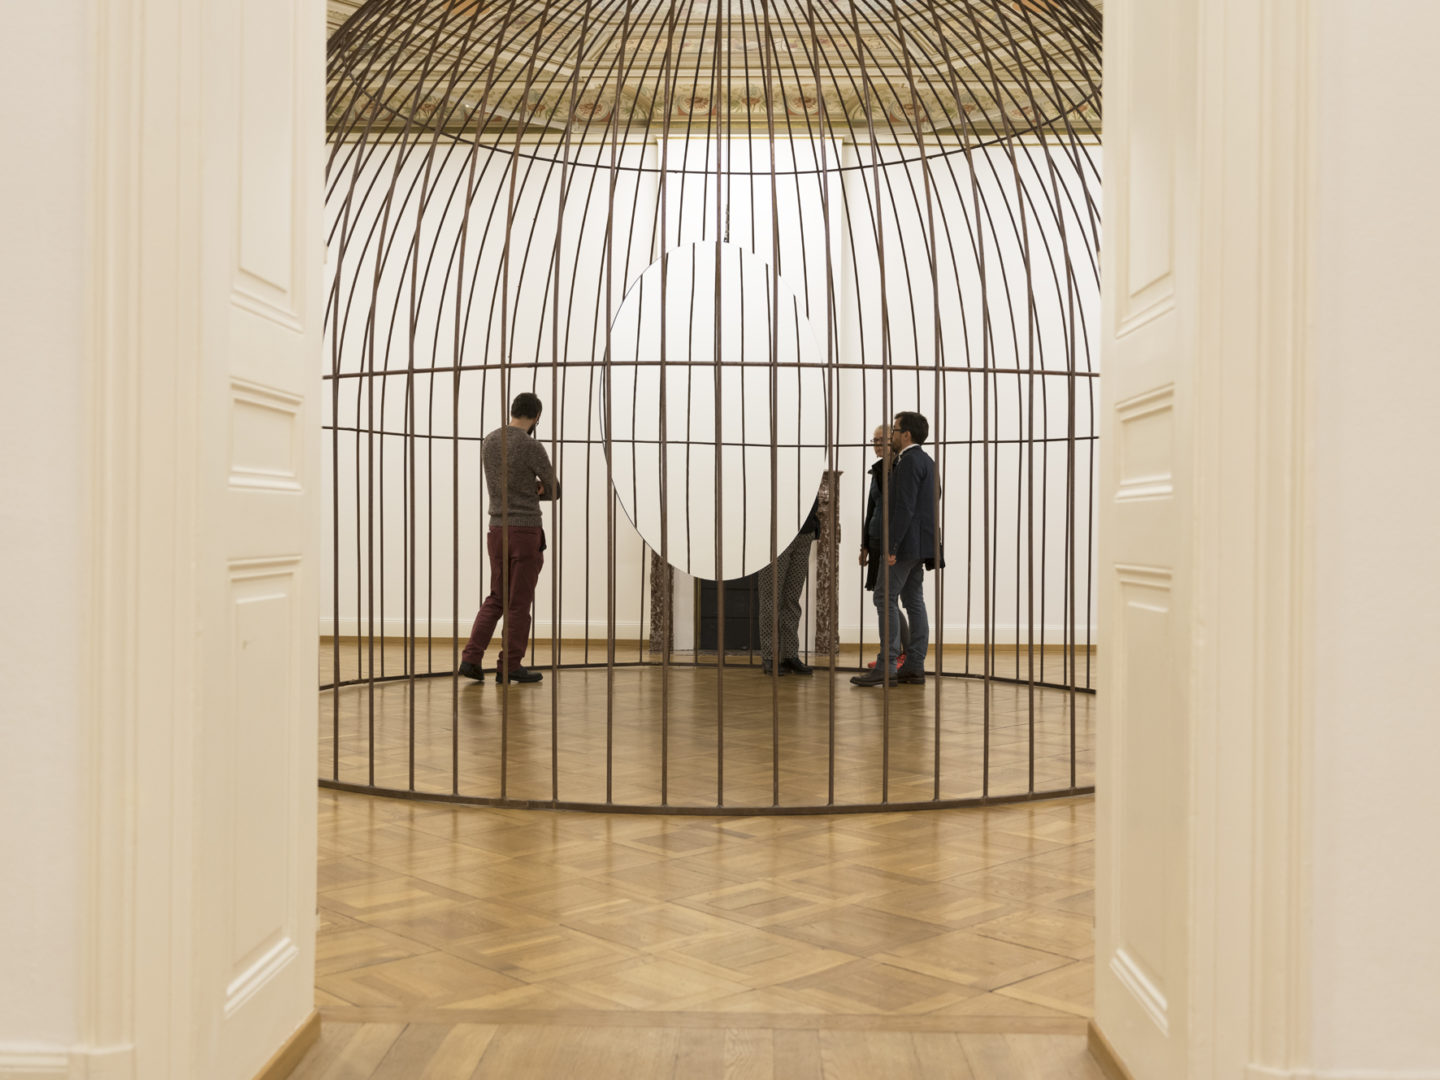 """Exhibition view Jeppe Hein """"Inhale, Hold, Exhale"""" at Kunstmuseum Thun, 2018 / Photo: Ian G. C. White / Courtesy: the artist"""